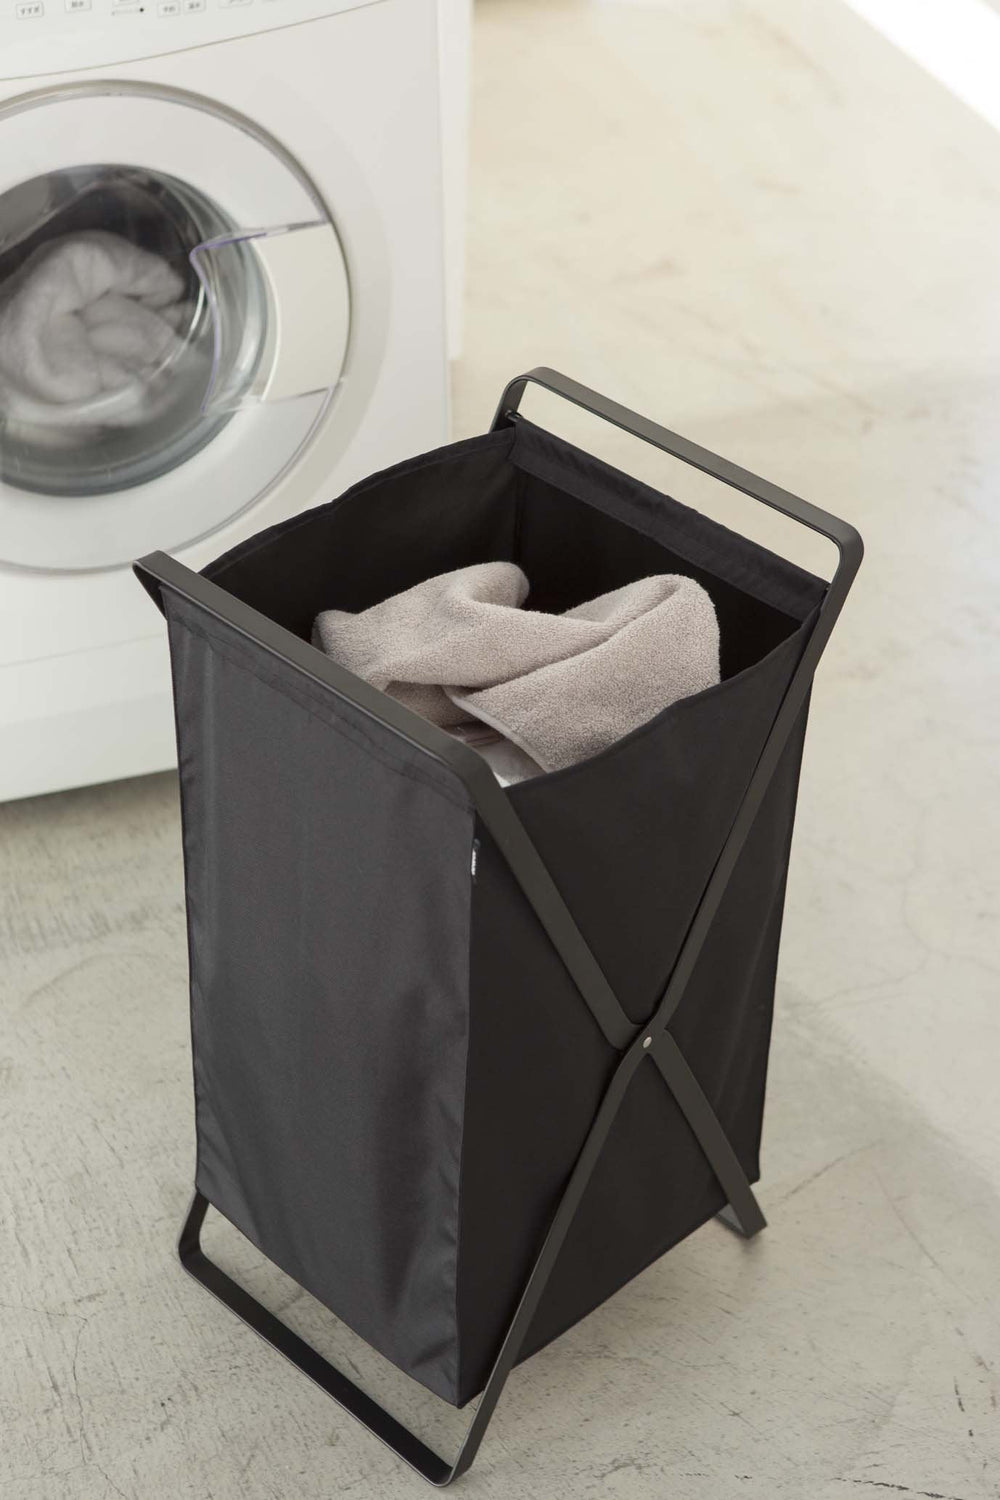 Yamazaki's black cloth collapsible laundry hamper next to a washing machine